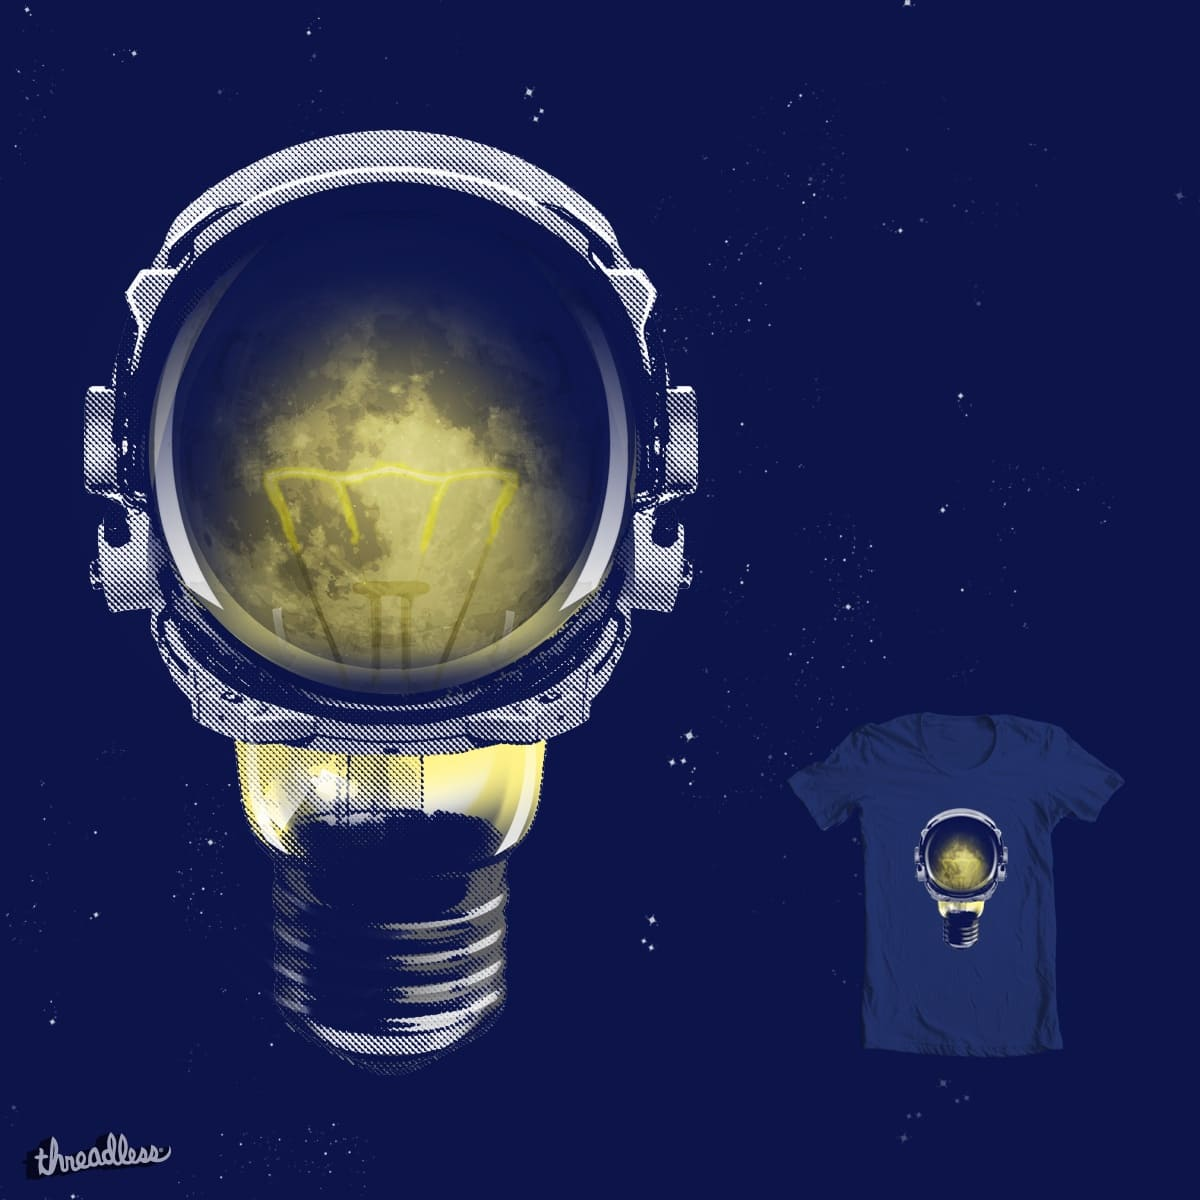 Astro Thought by thetideconsumesme on Threadless